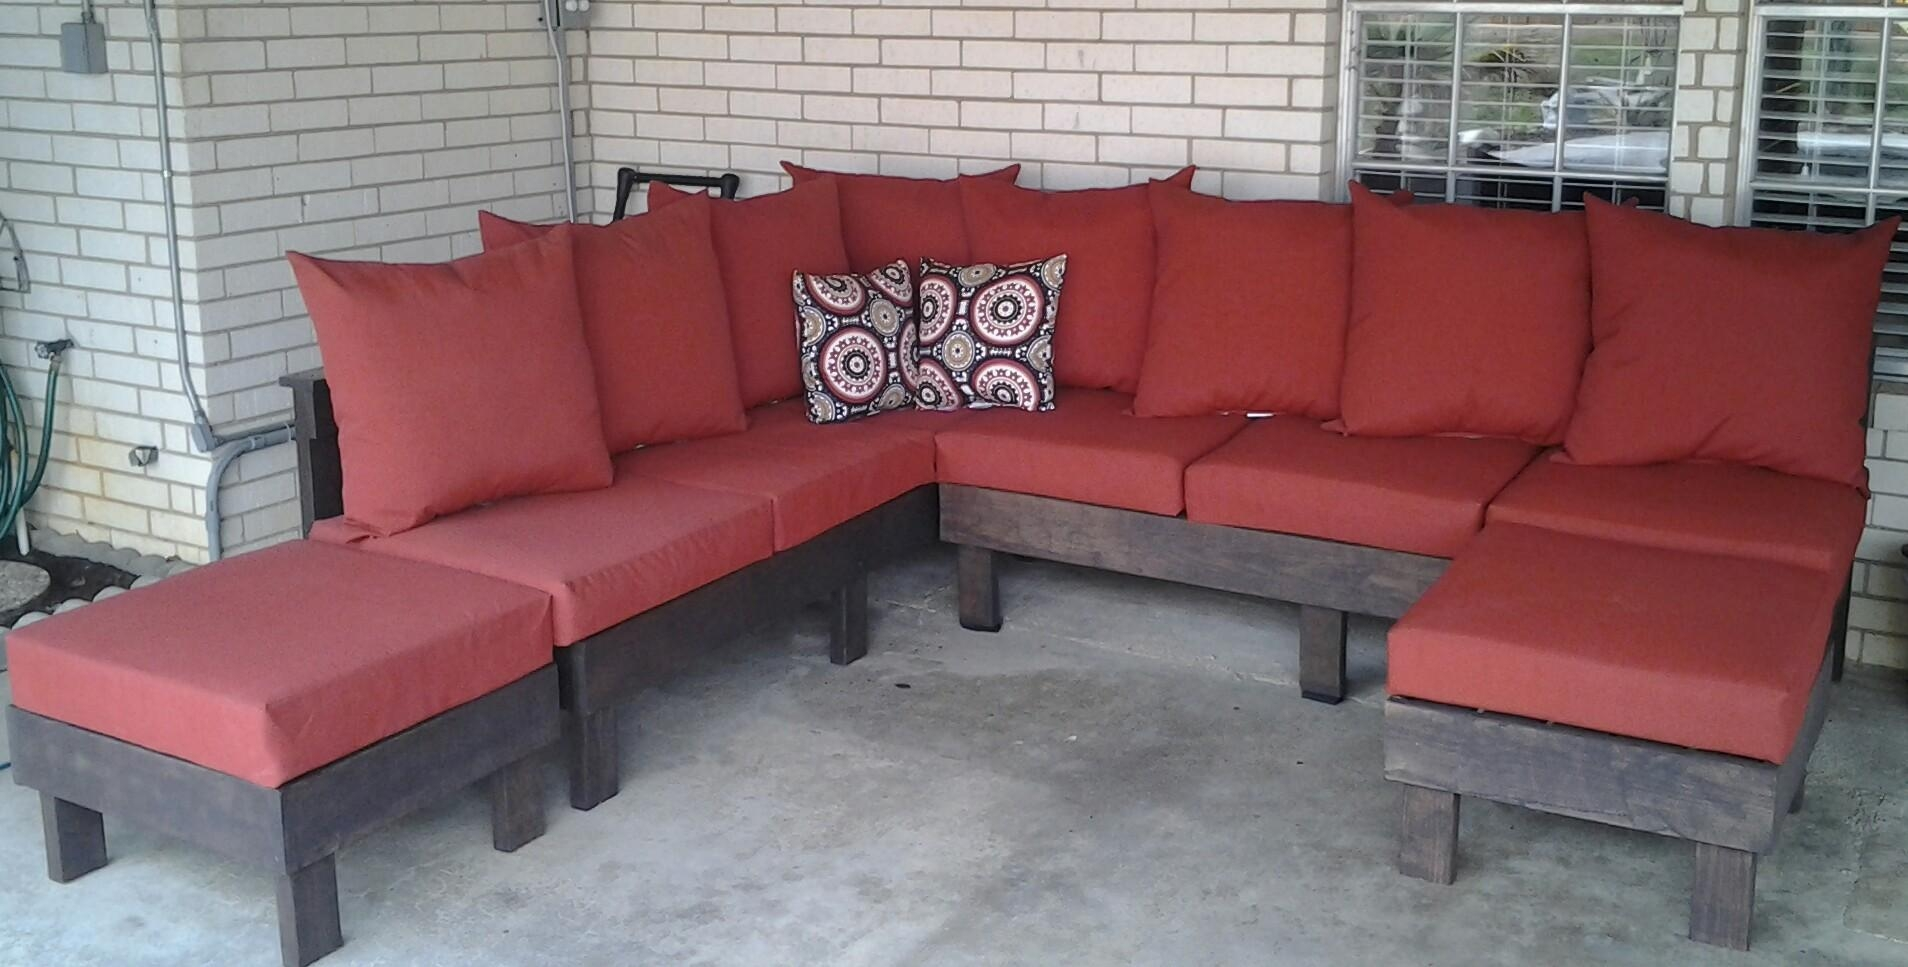 Ana White | Outdoor Sectional – Diy Projects Throughout Ana White Outdoor Sectional Sofas (View 8 of 20)